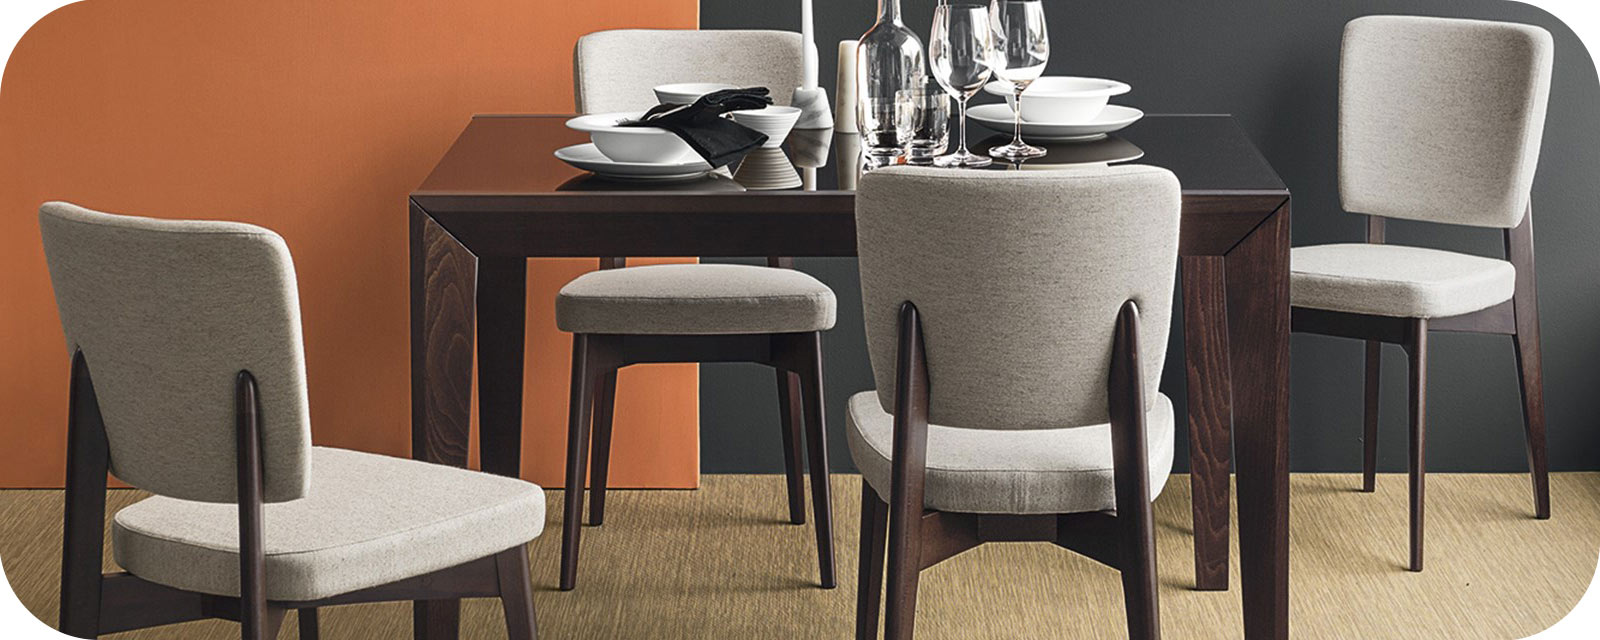 Sedia Calligaris Aida Soft Chairs Stackable Chairs Folding Chairs Net And Feel Shop Online